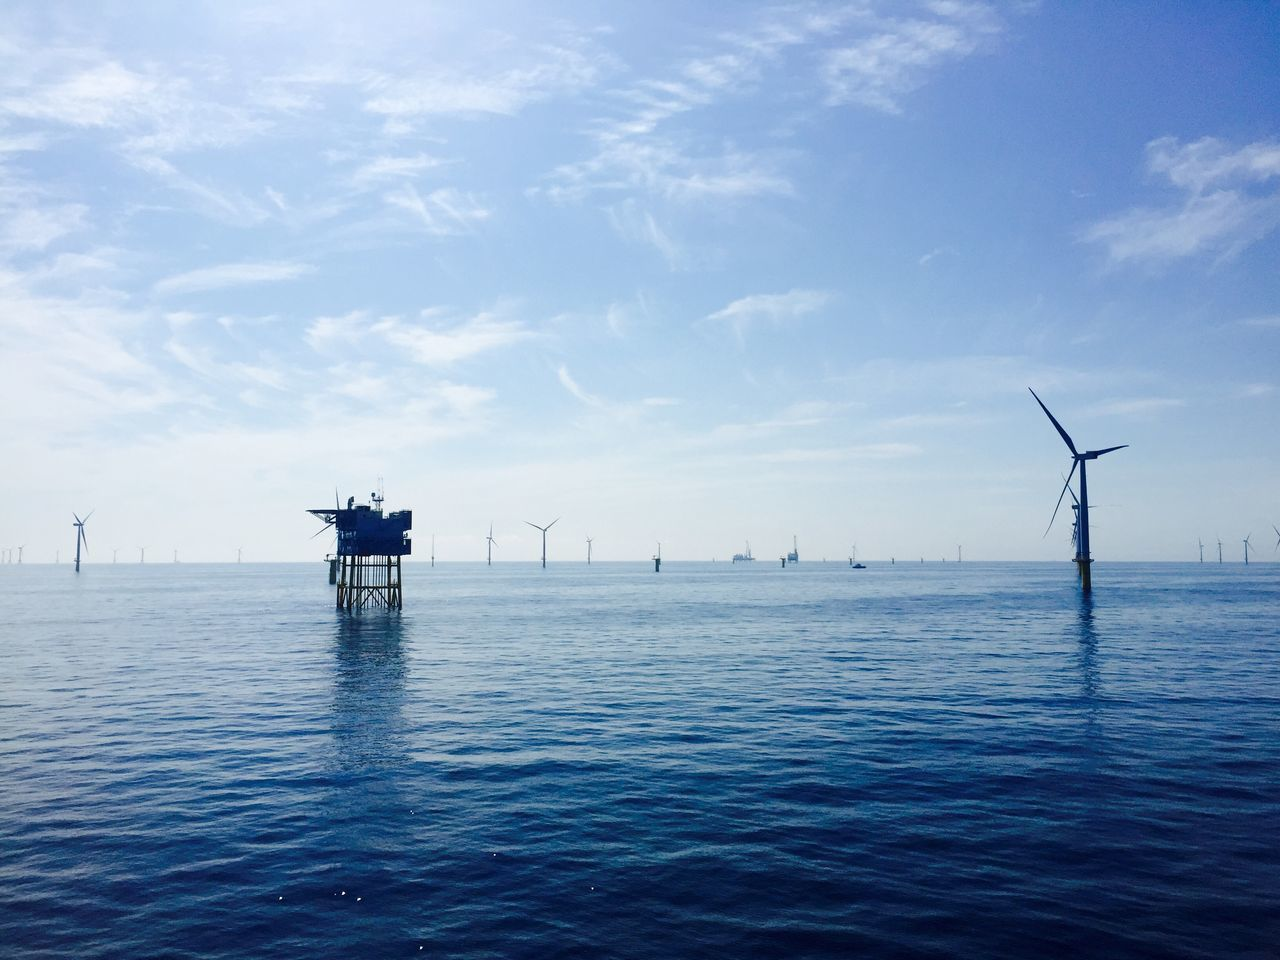 sea, water, waterfront, sky, beauty in nature, nautical vessel, cloud - sky, nature, scenics, tranquility, tranquil scene, transportation, day, outdoors, mode of transport, horizon over water, wind power, no people, wind turbine, blue, windmill